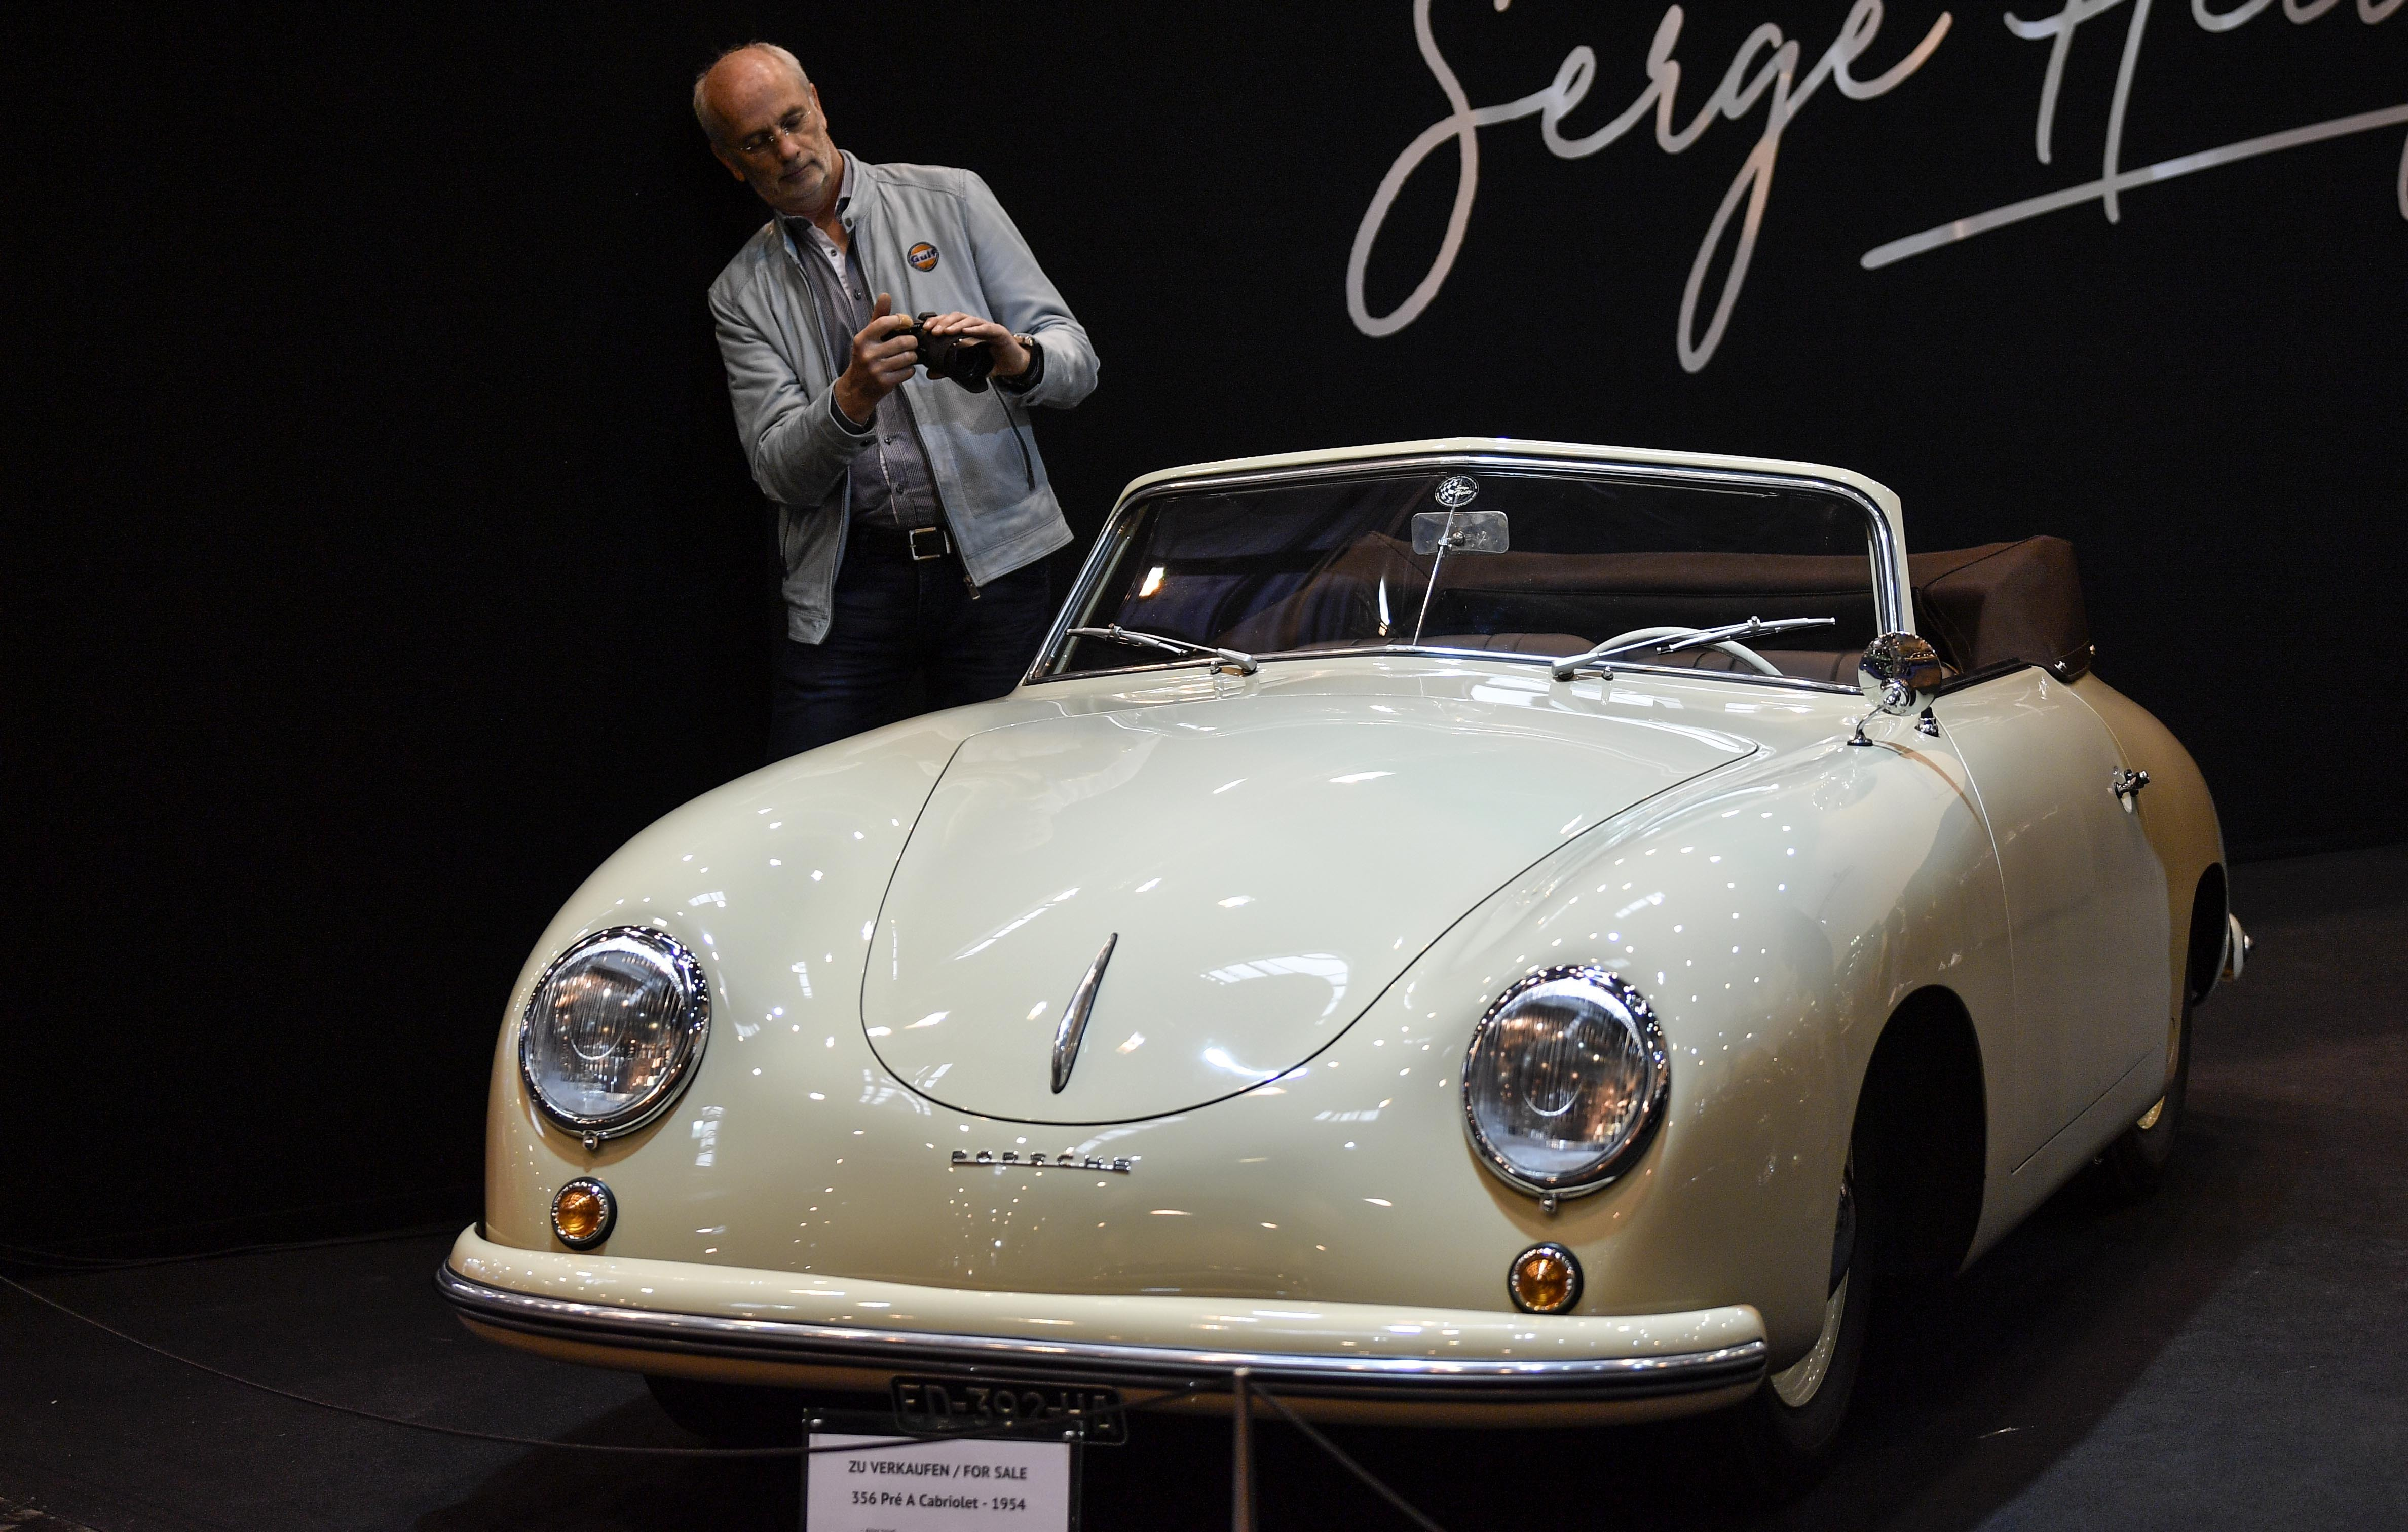 A man takes a picture of a Porsche 356 Cabriolet from 1954 on sale at the World Show for Vintage, Classic and Prestige Automobiles Techno-Classica in Essen, Germany, Friday, April 12, 2019. (AP Photo/Martin Meissner)